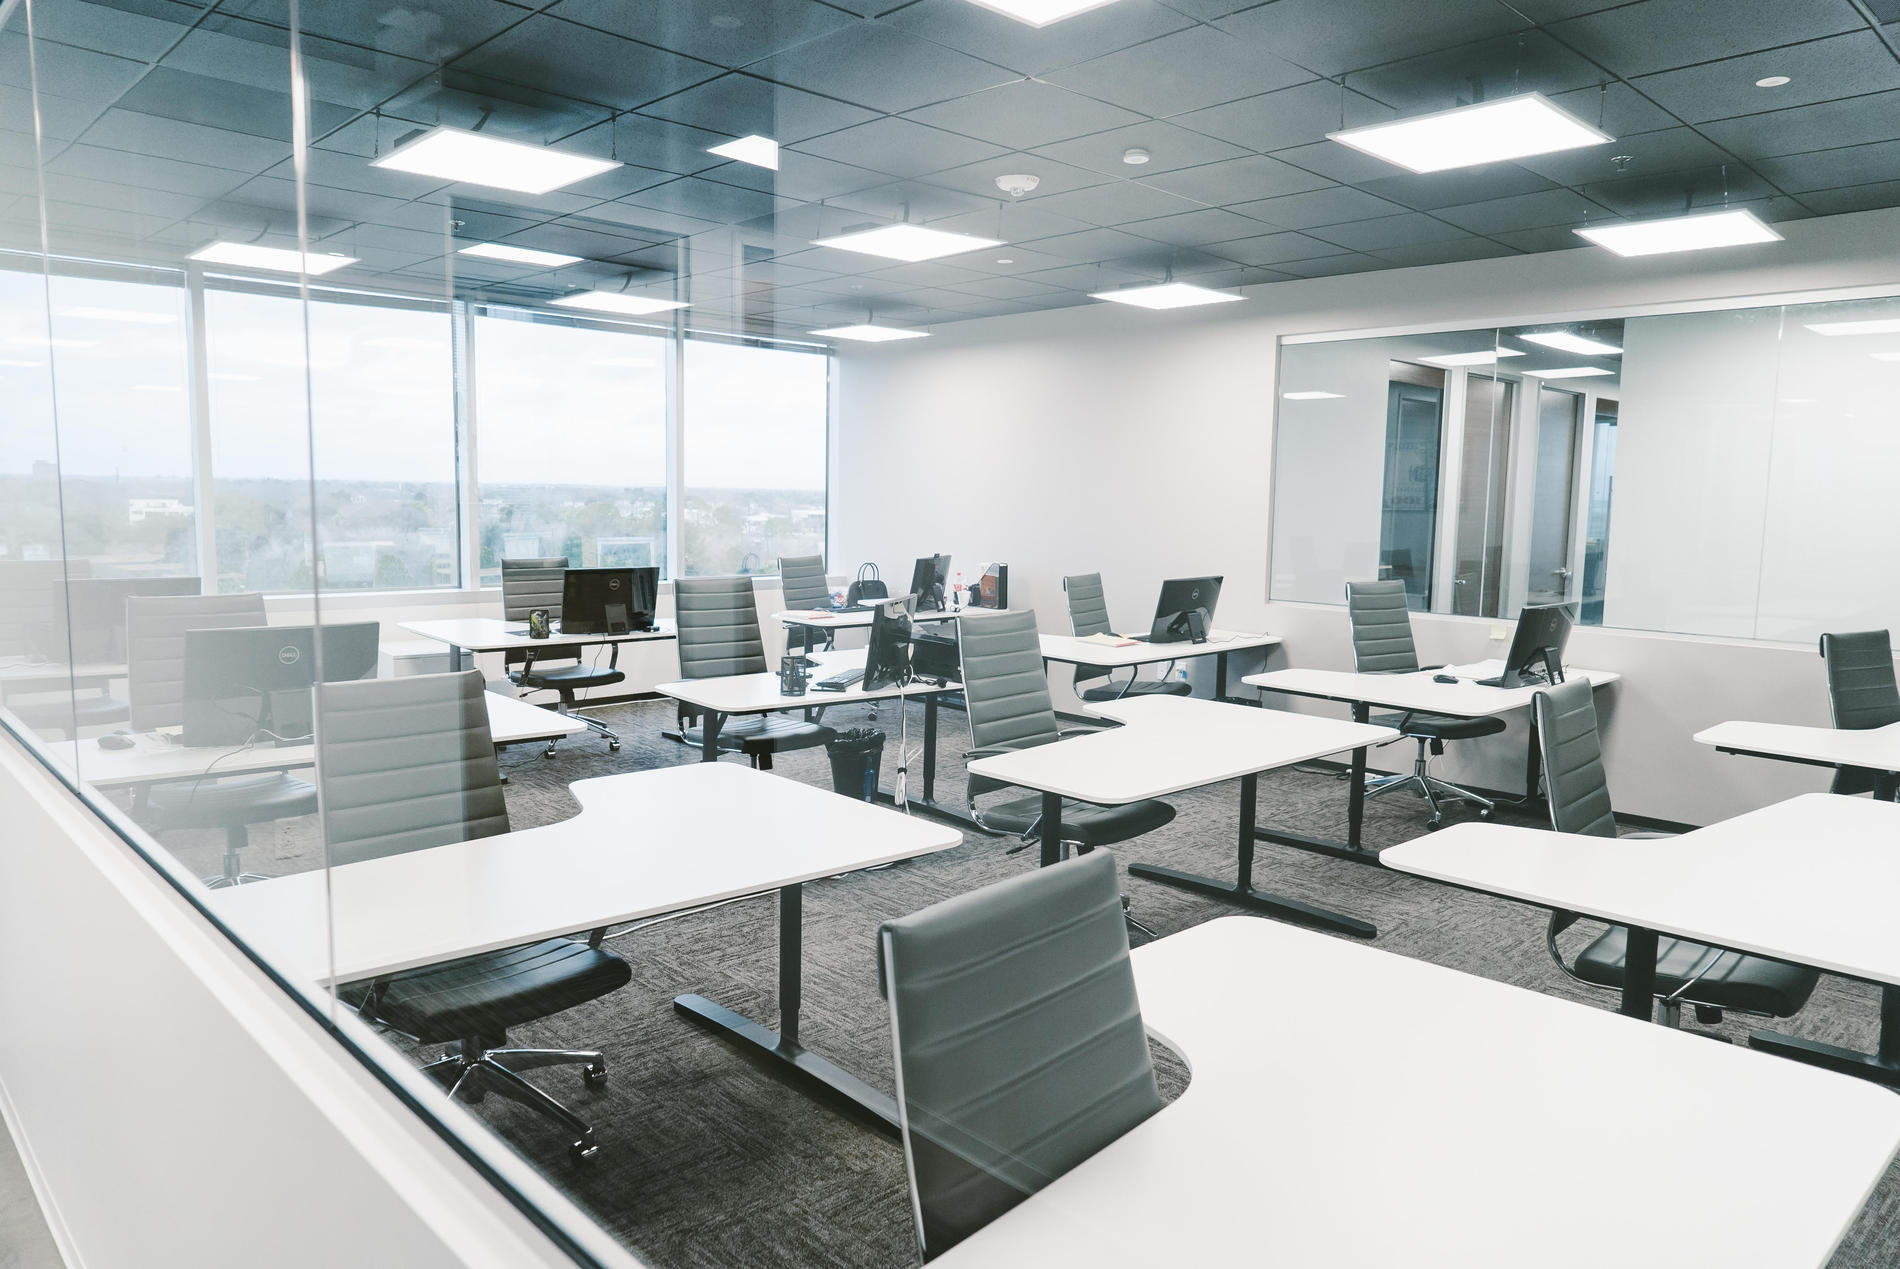 Simplified Pricing for Team Offices per employee pricing, turnkey, all-inclusive, no commitment or upfront costs.